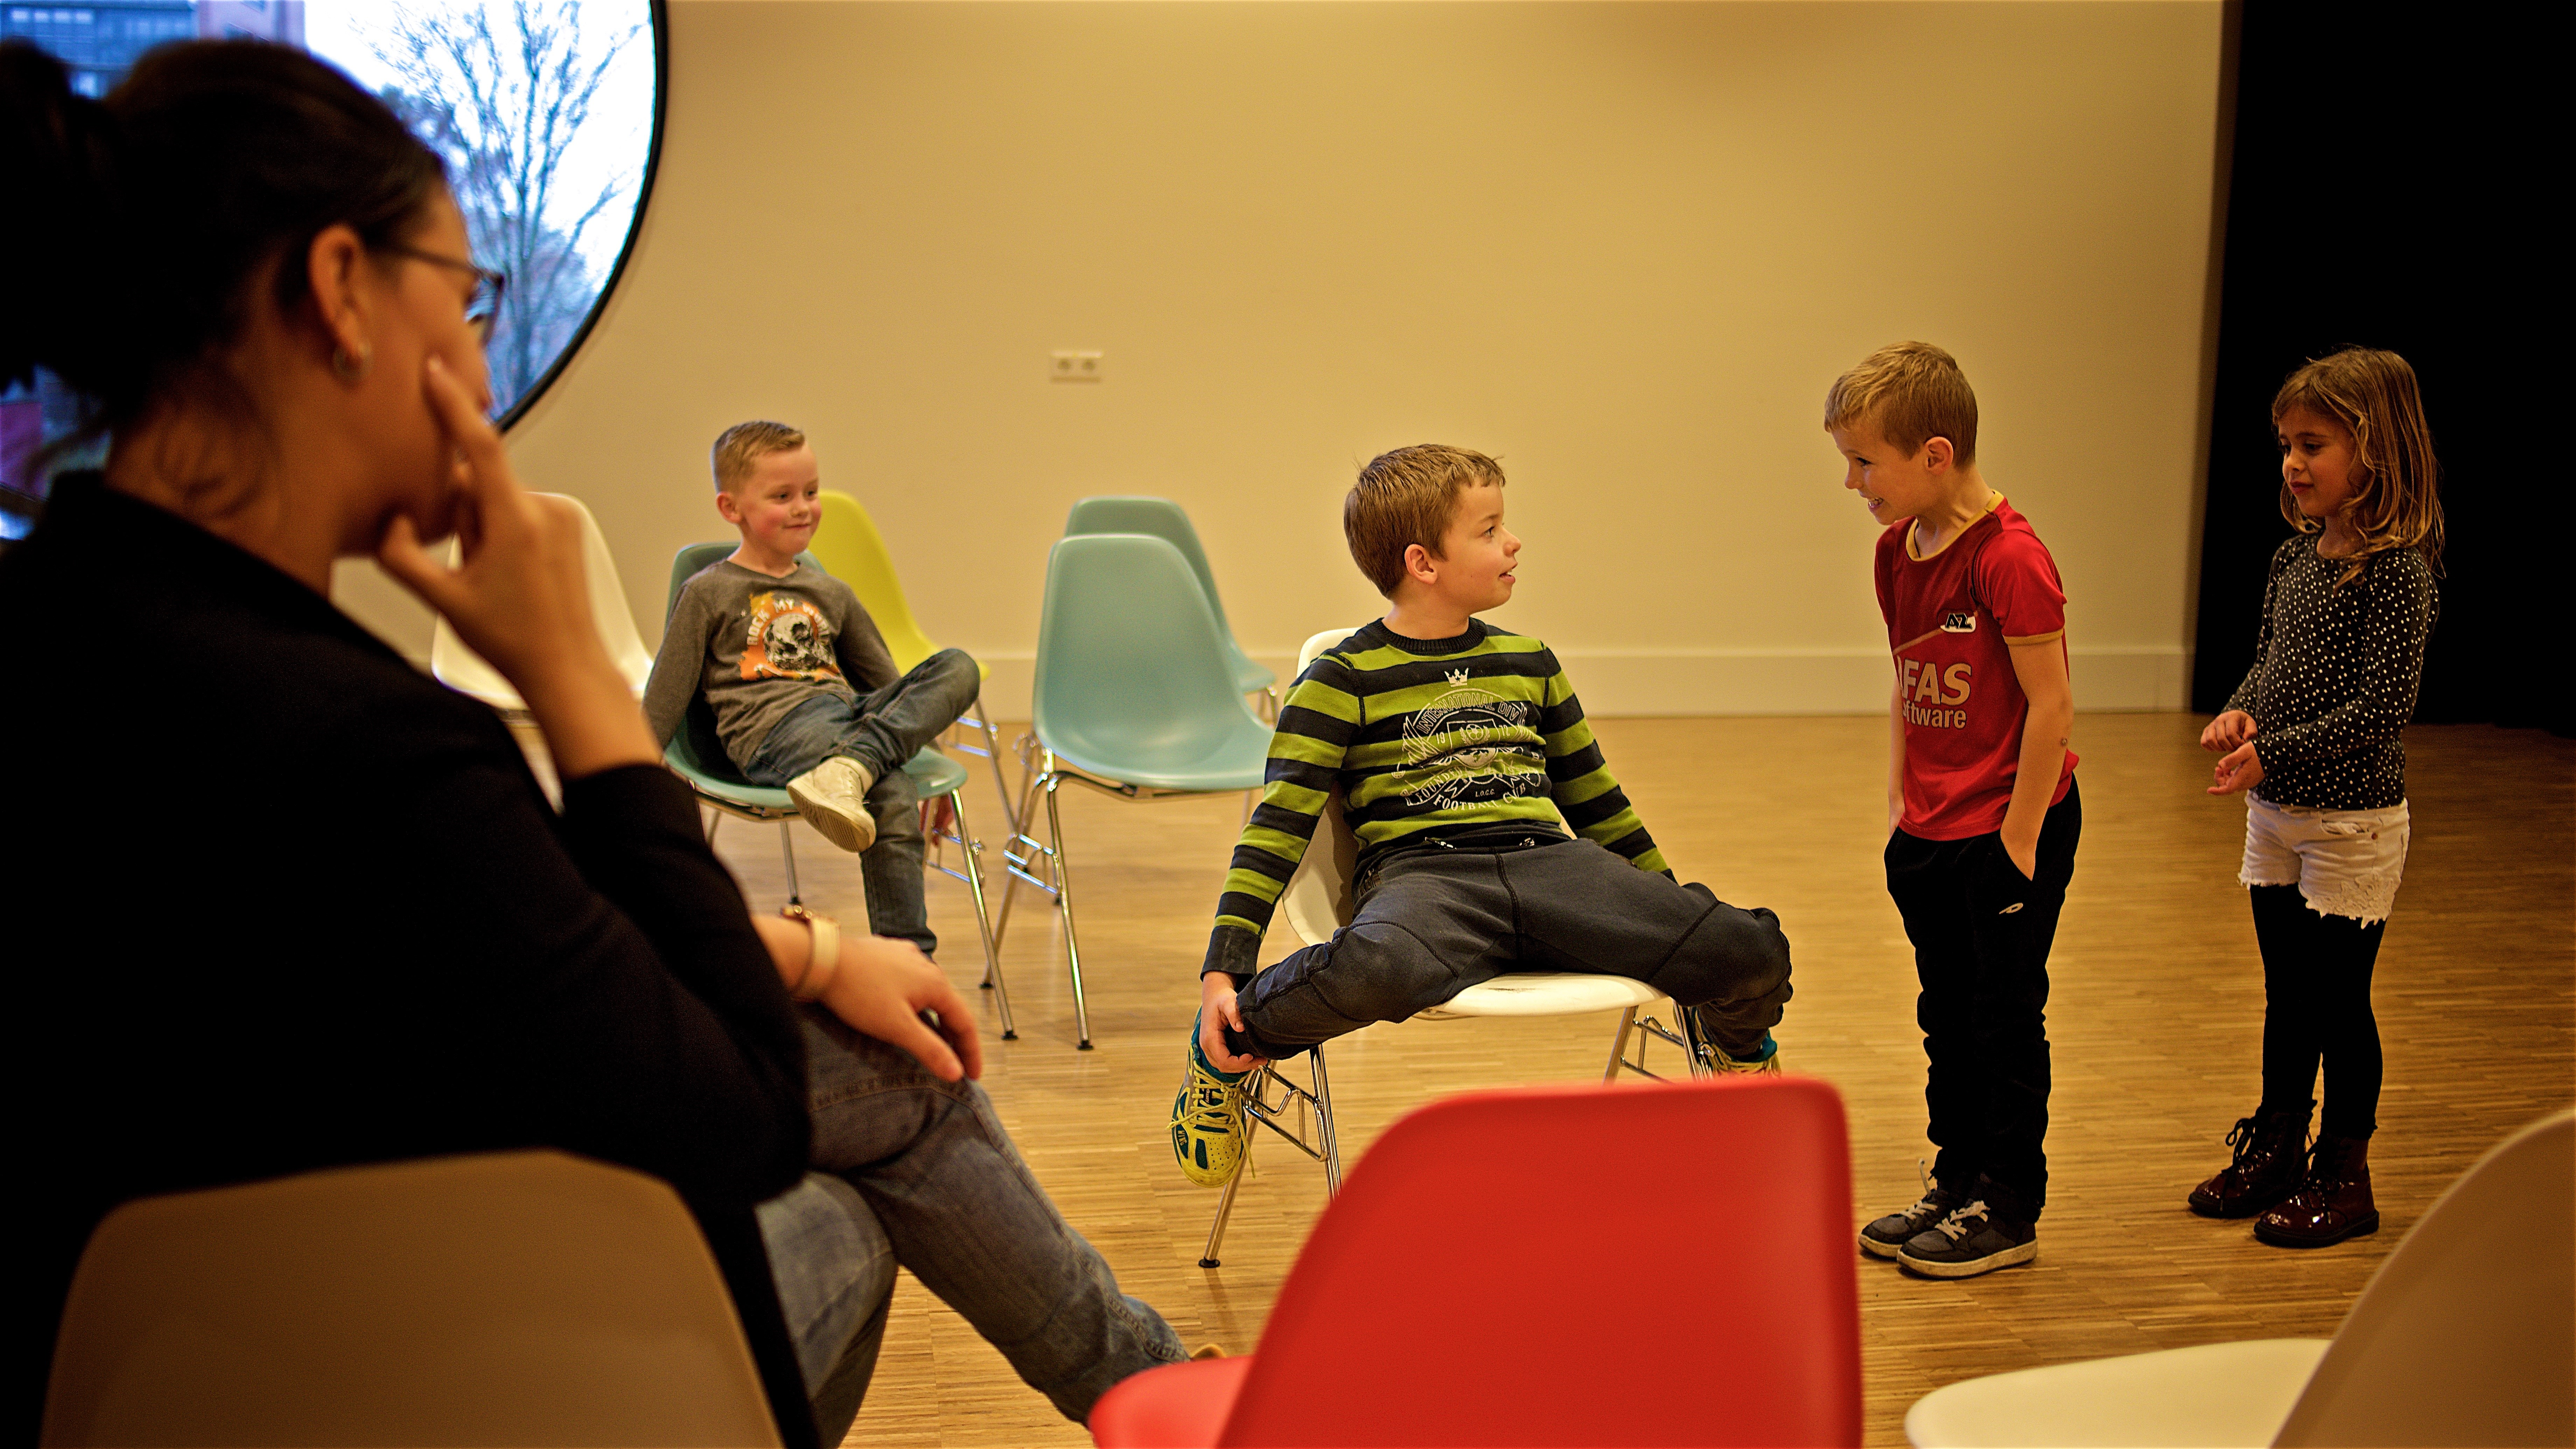 Theater & Musical - Theaterklas 6-8 jaar - (Frits de Beer).jpg